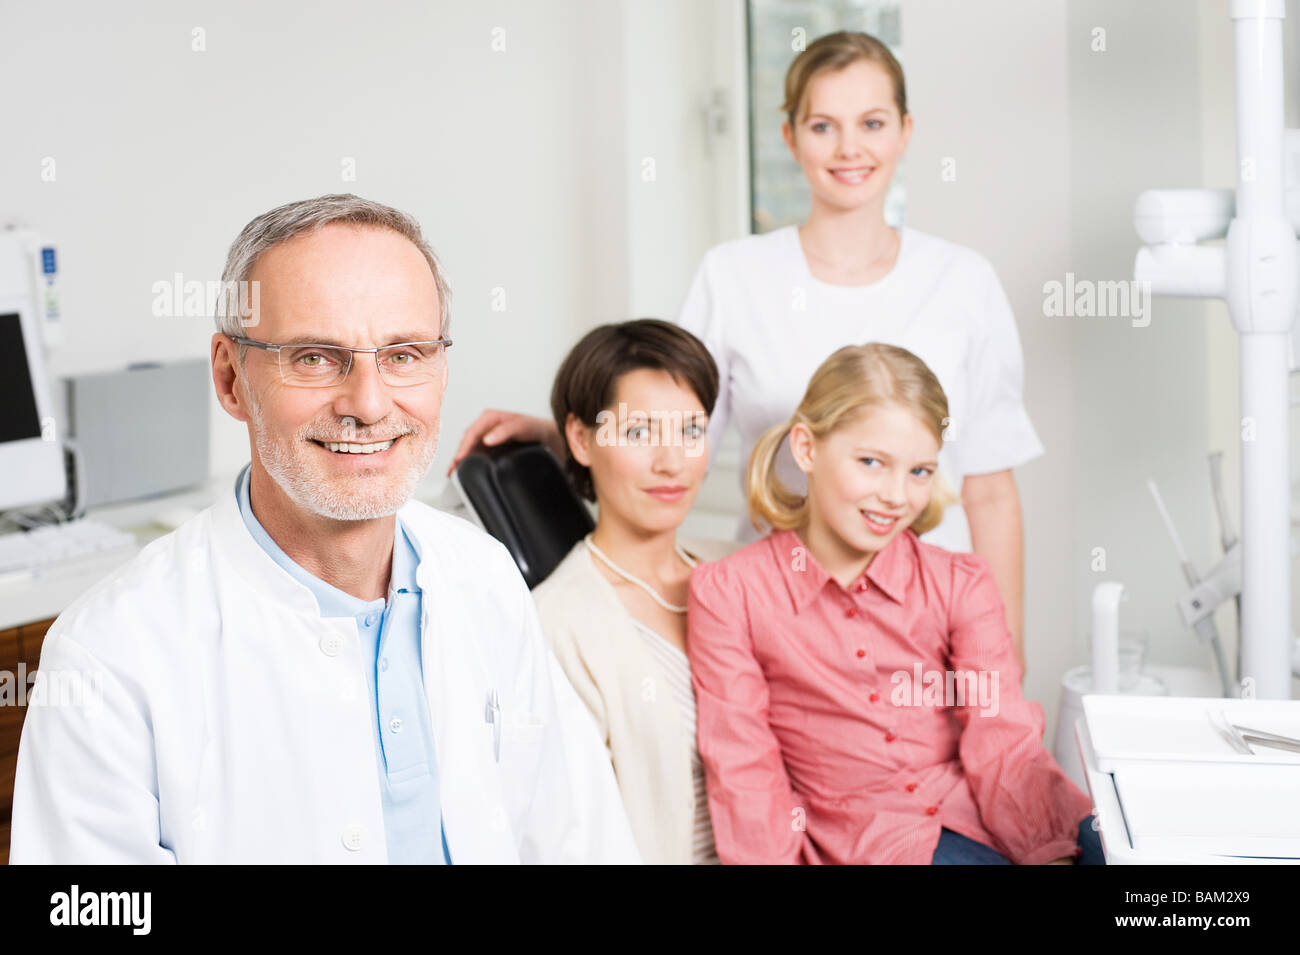 Dentist and patients - Stock Image